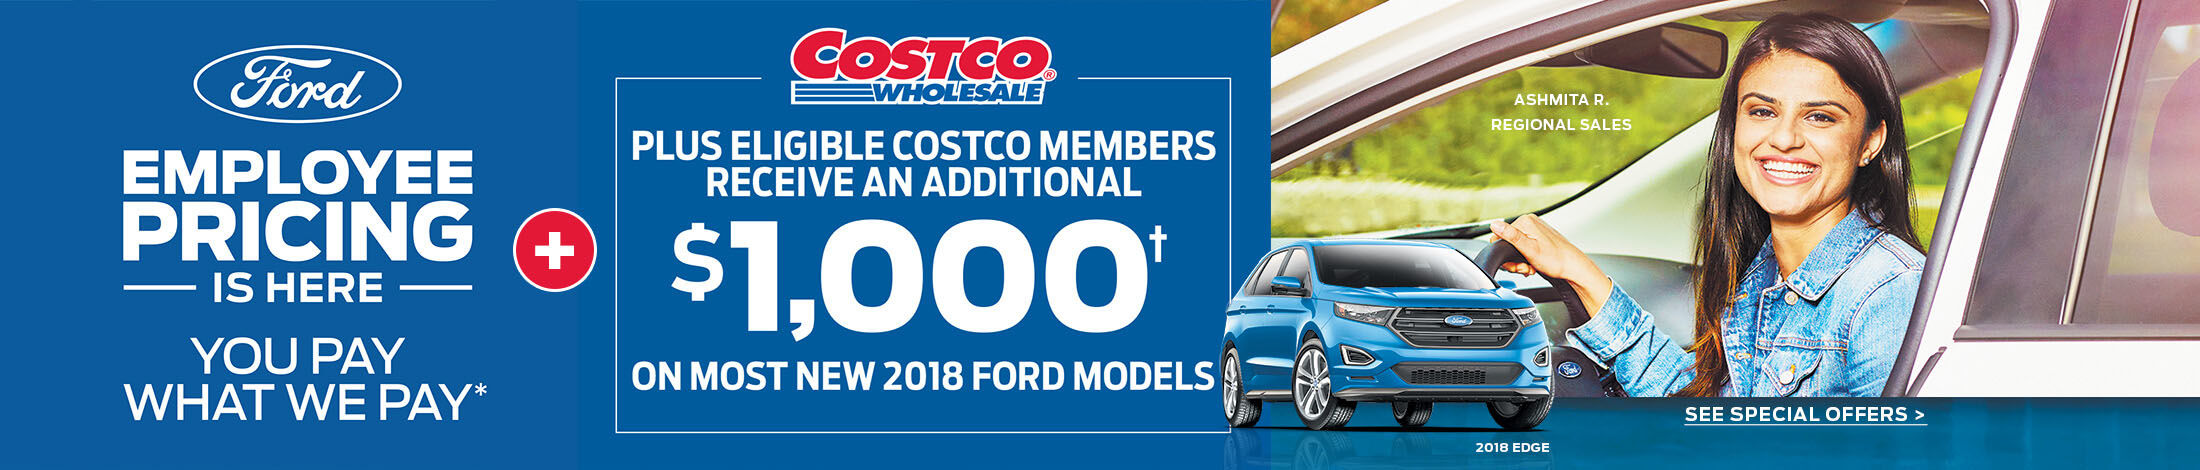 Ford-Employee pricing is here